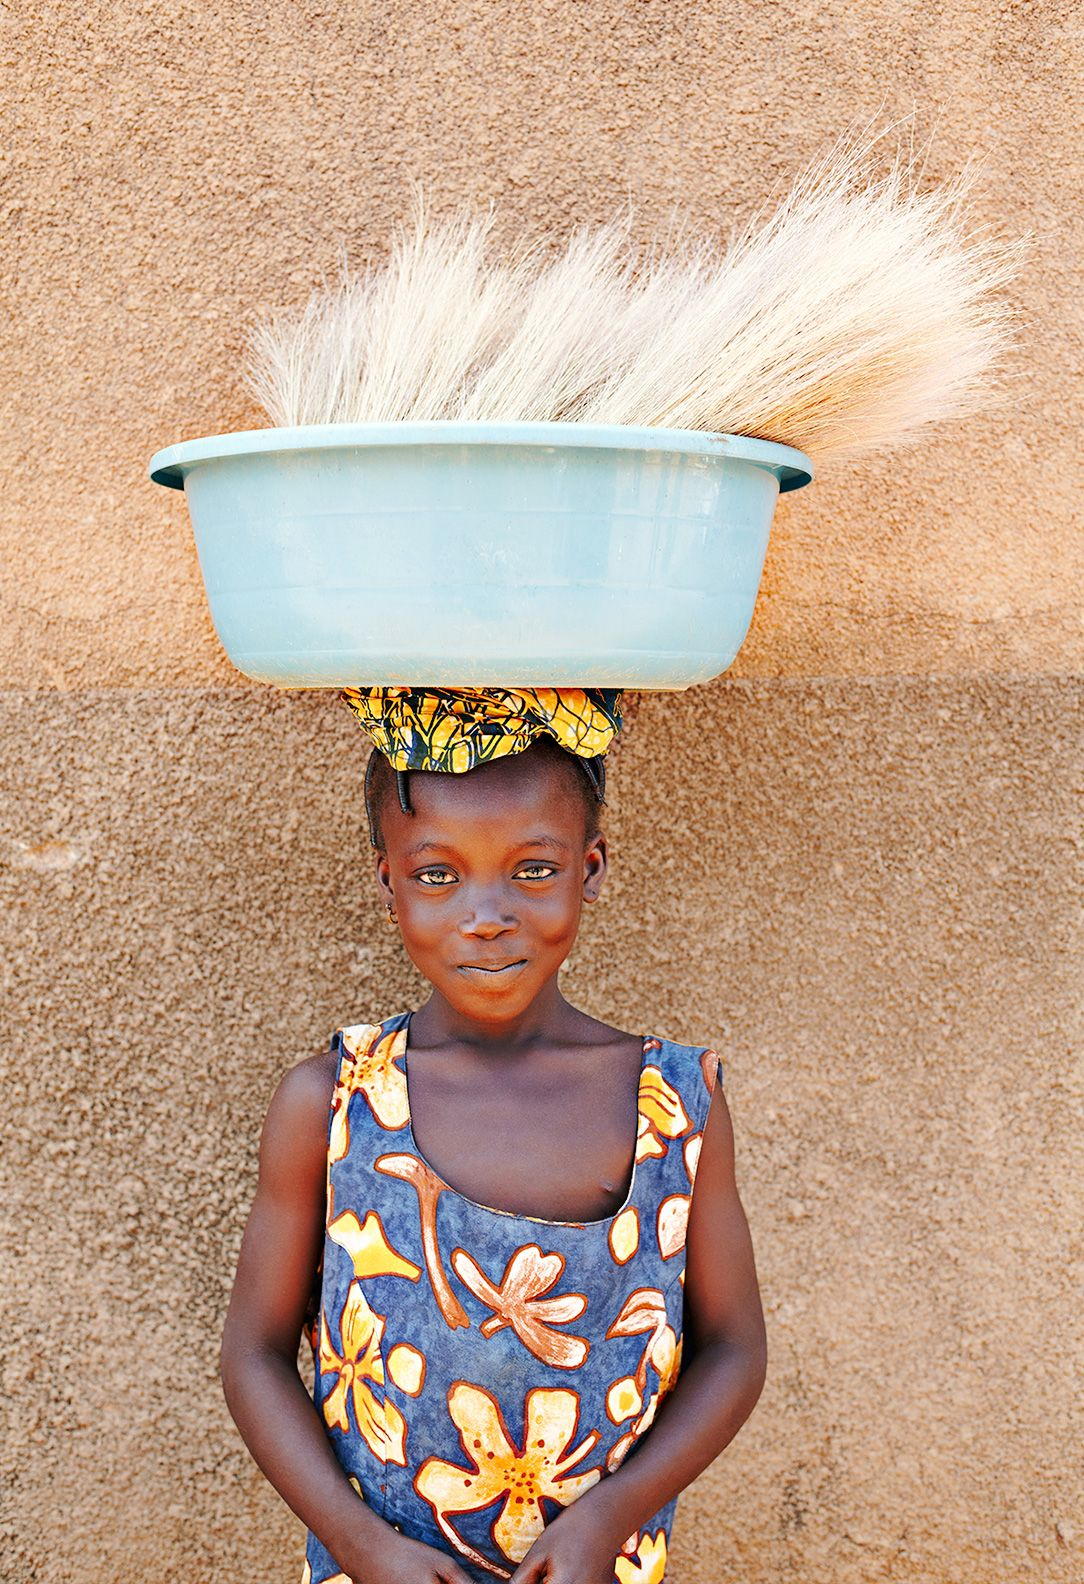 Young girl standing with a large bucket balanced on her head